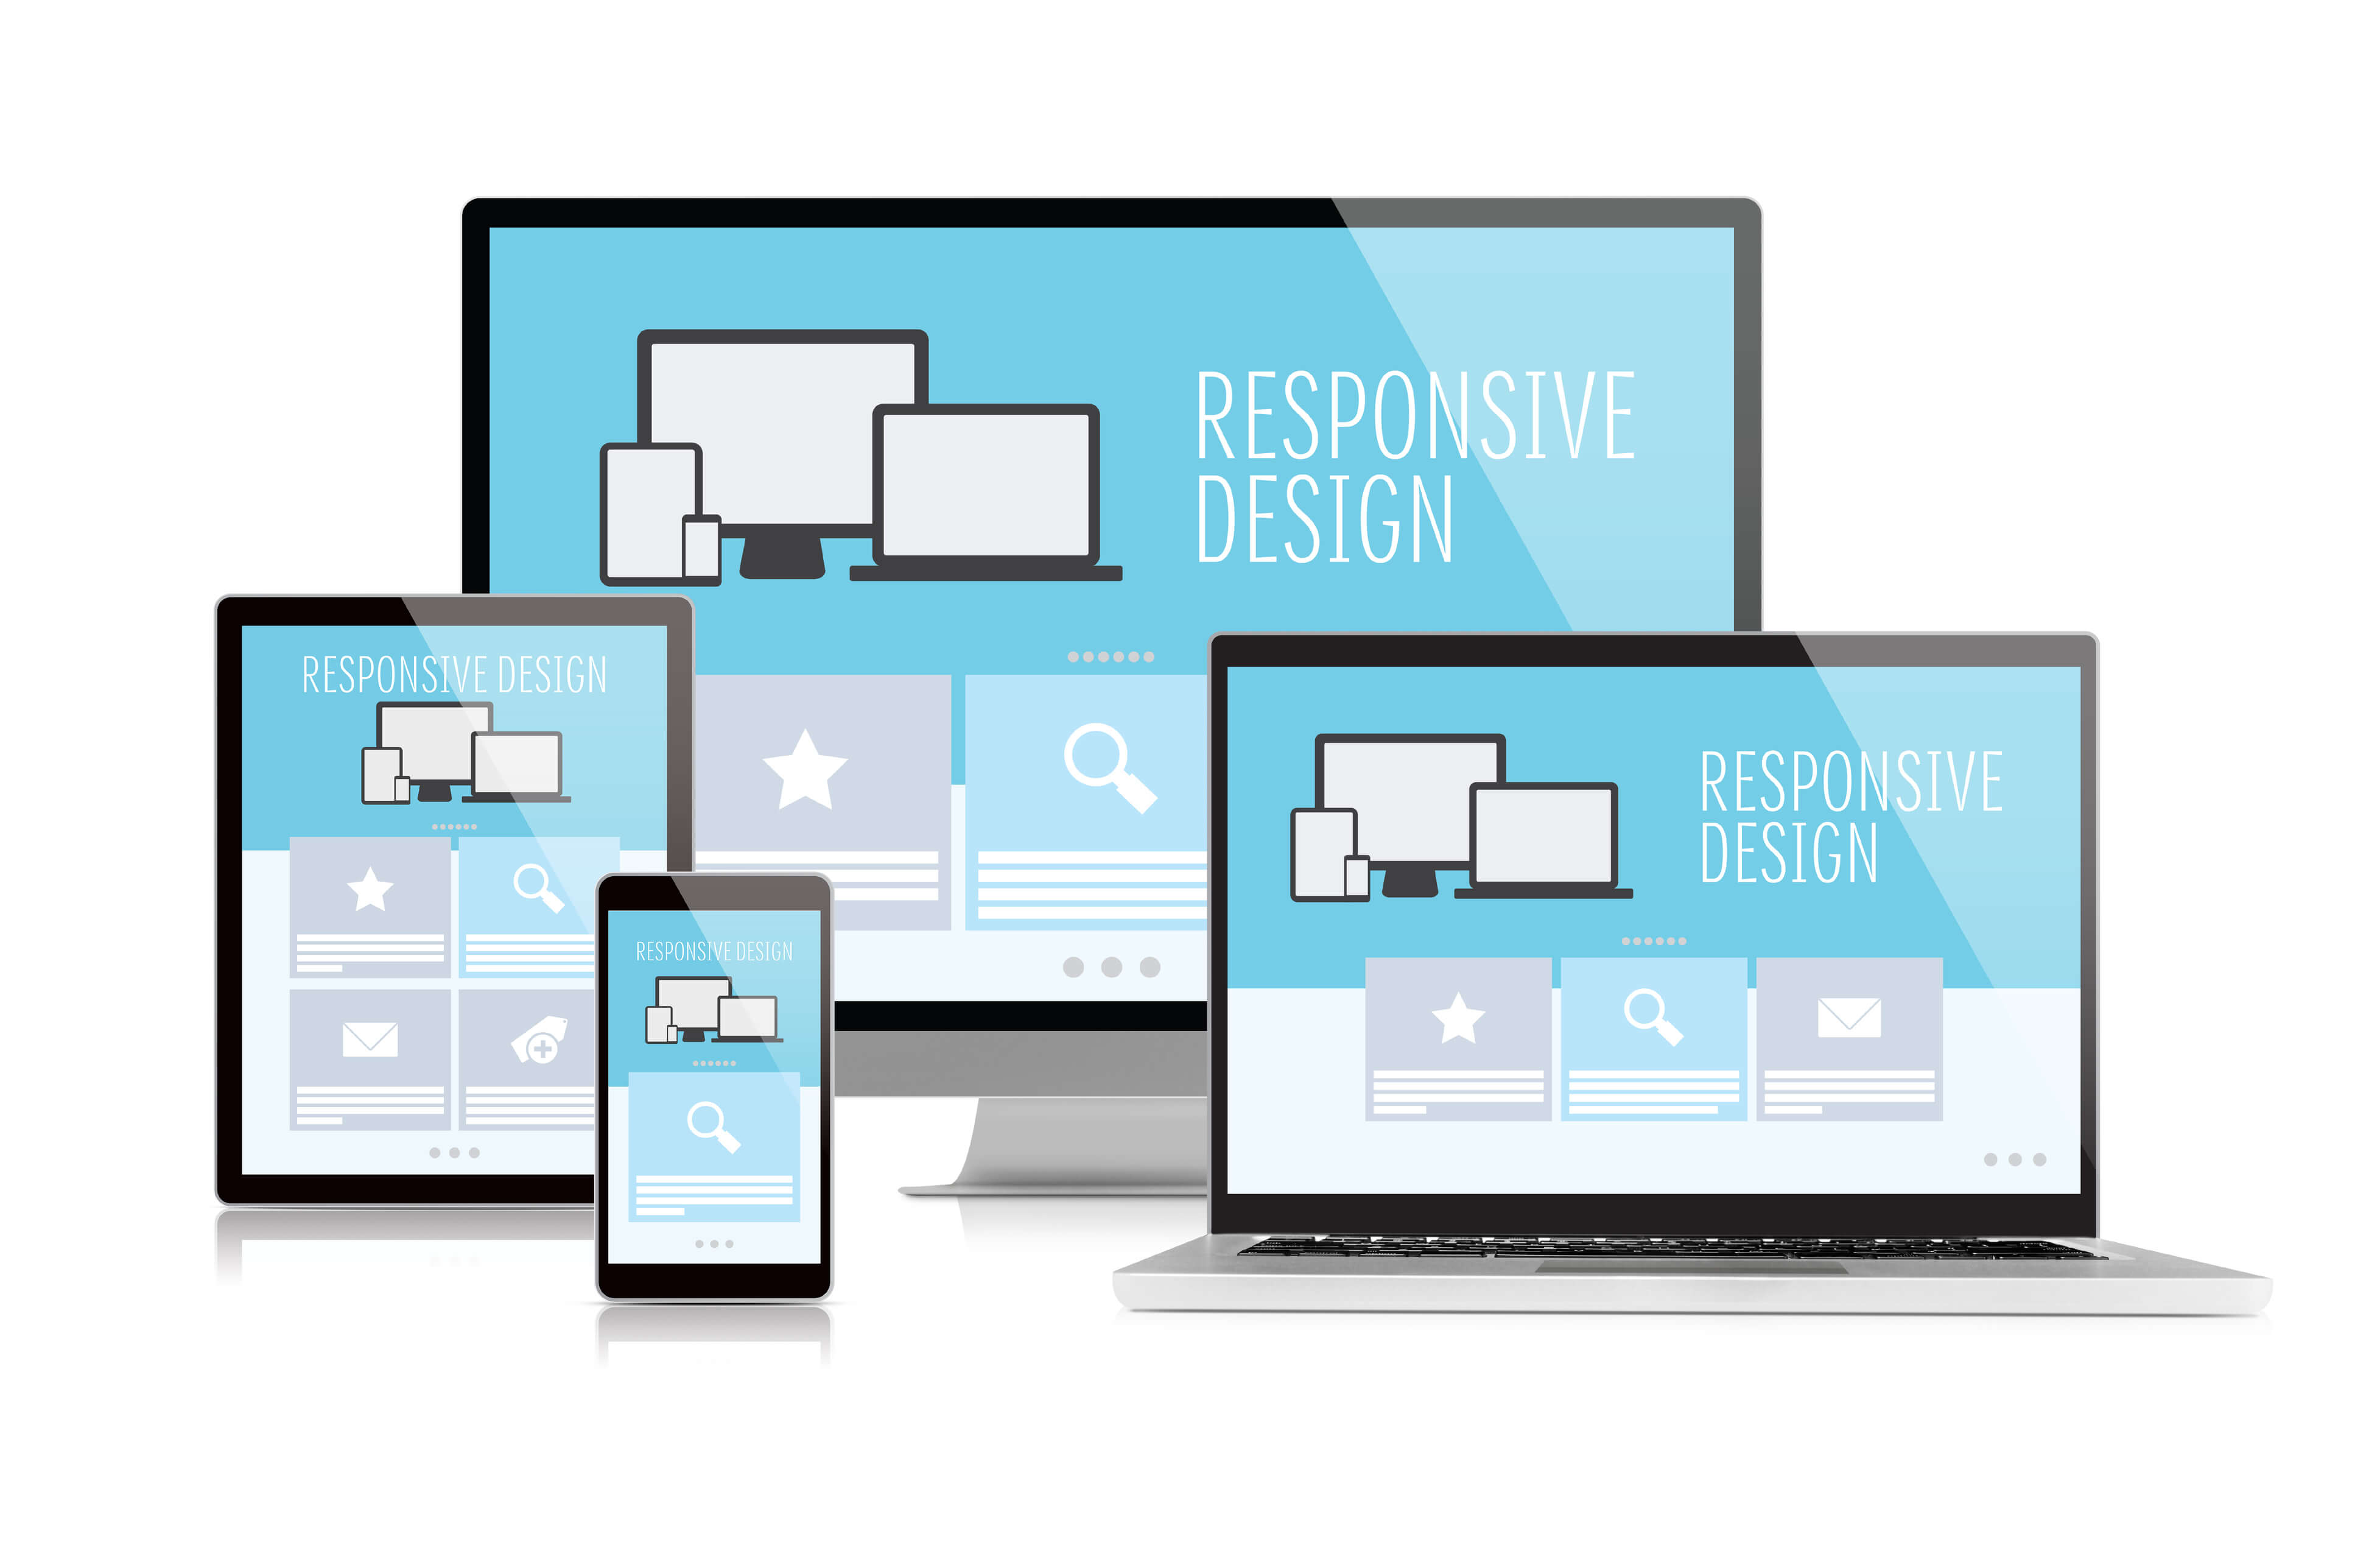 Responsive design on multiple devices